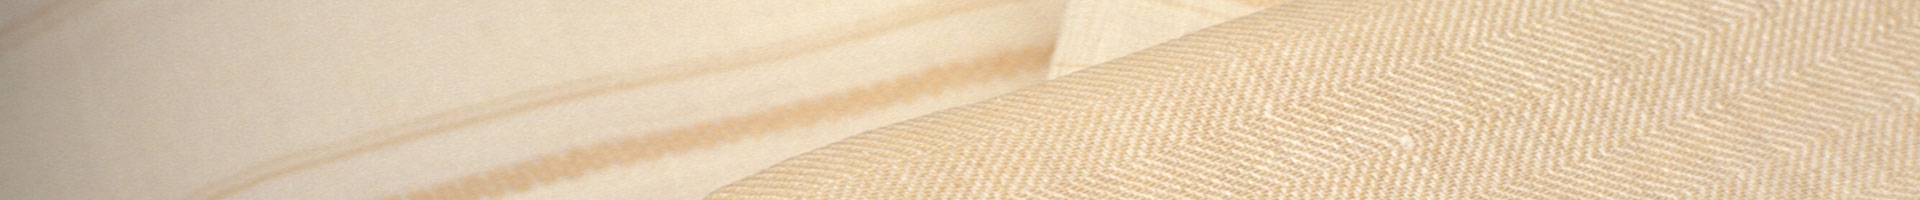 Beige linen bedsheets plain and striped